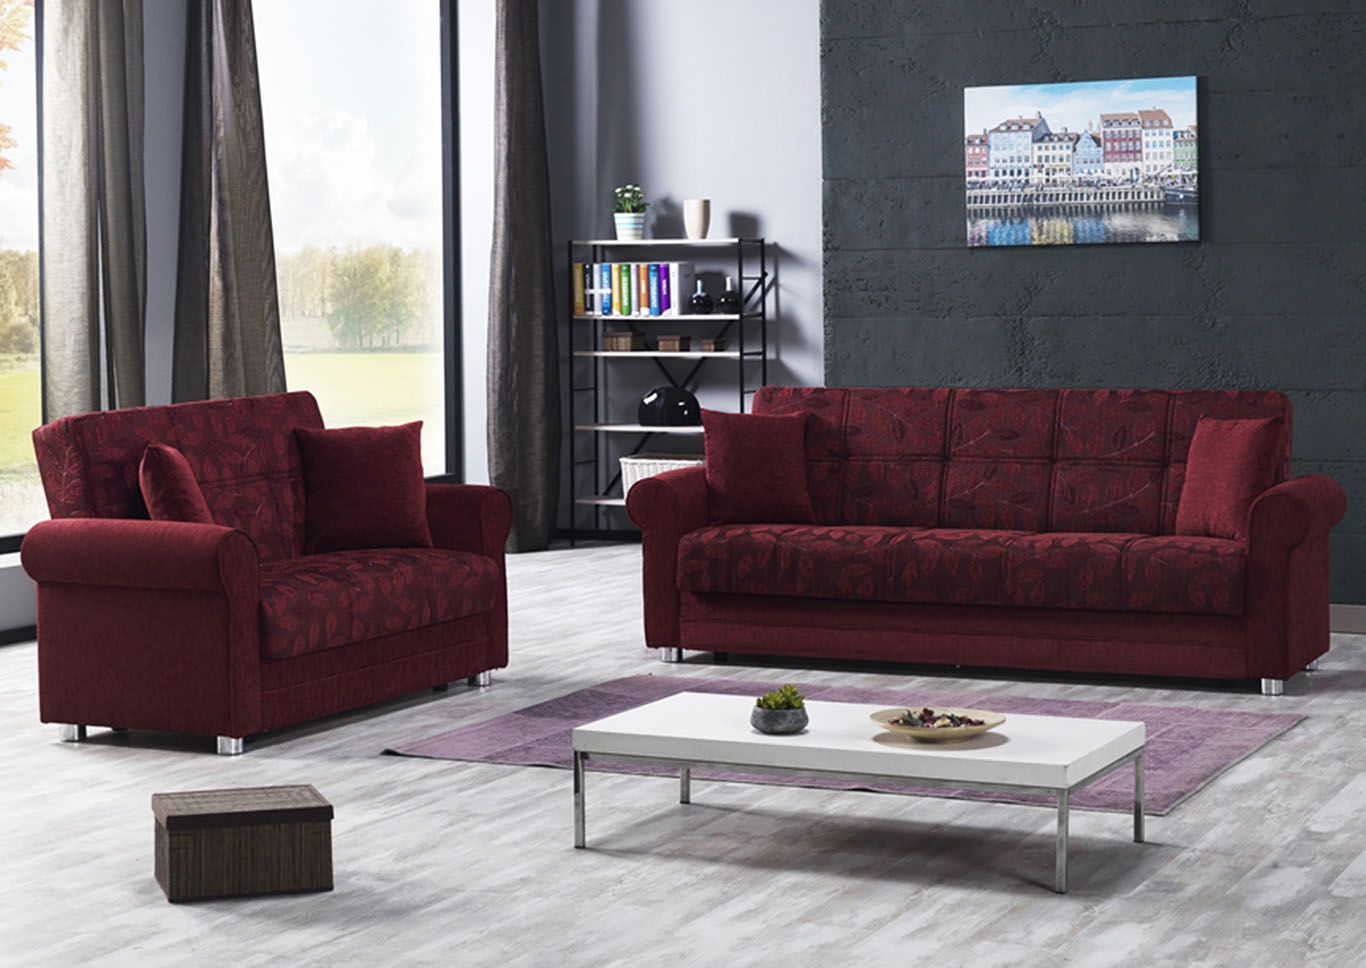 Rio Grande Burgundy Chenille Sofabed,CasaMode Functional Furniture